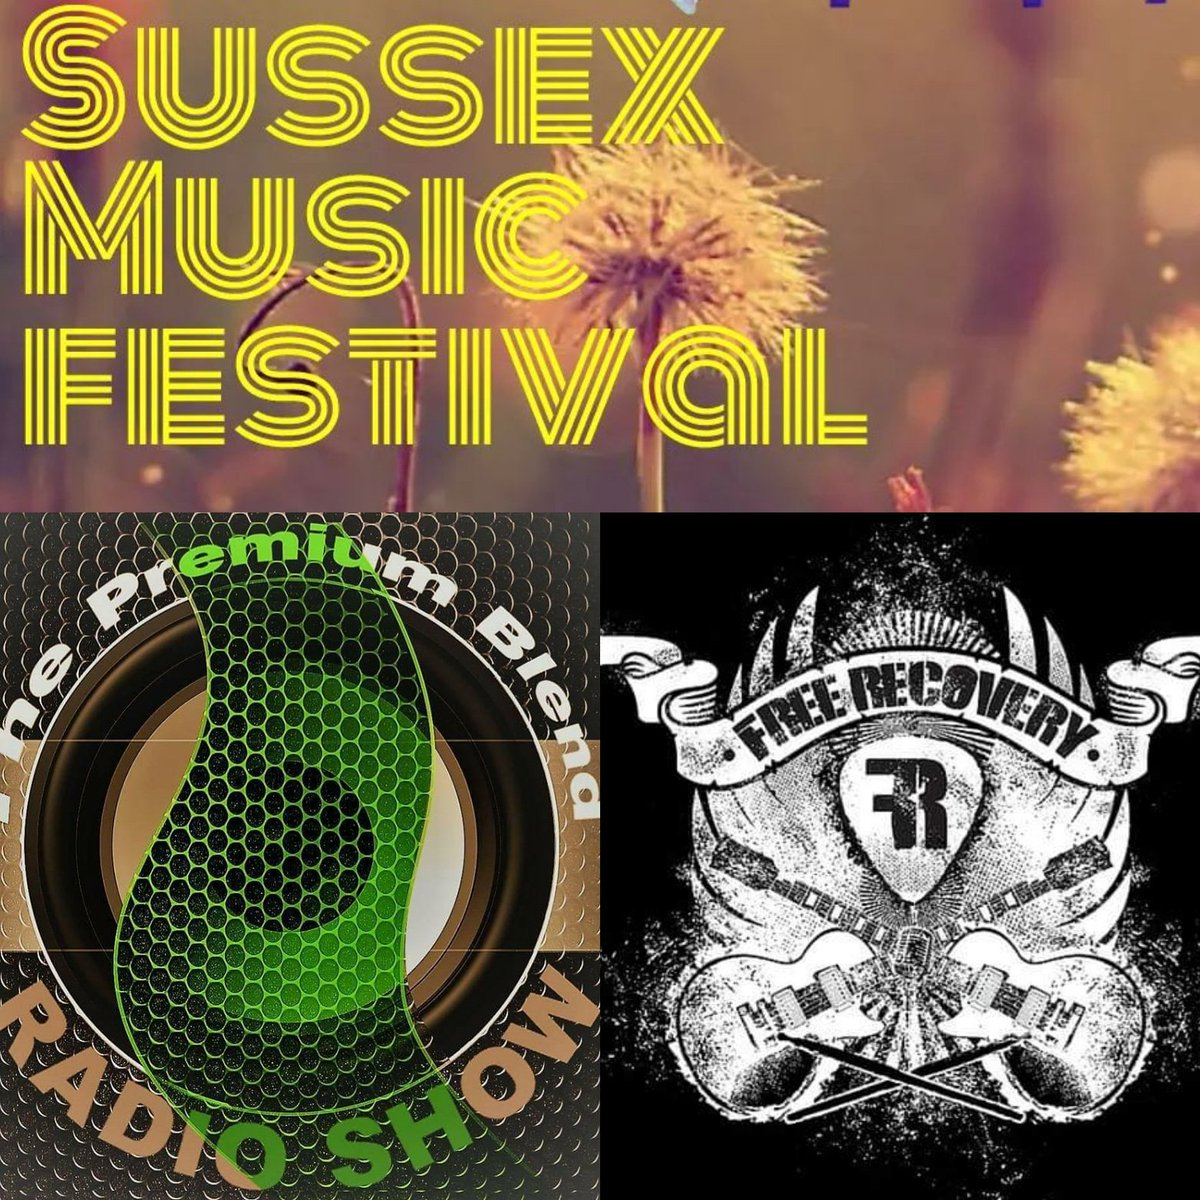 Tomorrow at 7pm (BST) on @hailshamfm its looking like another great show We have @SussexMusicFest in for a chat about this years festival along with @FreeRecovery for a #LiveSession. With tracks from the bands due at the festival + loads of #NewMusic #MusicHourUK #Unsigned